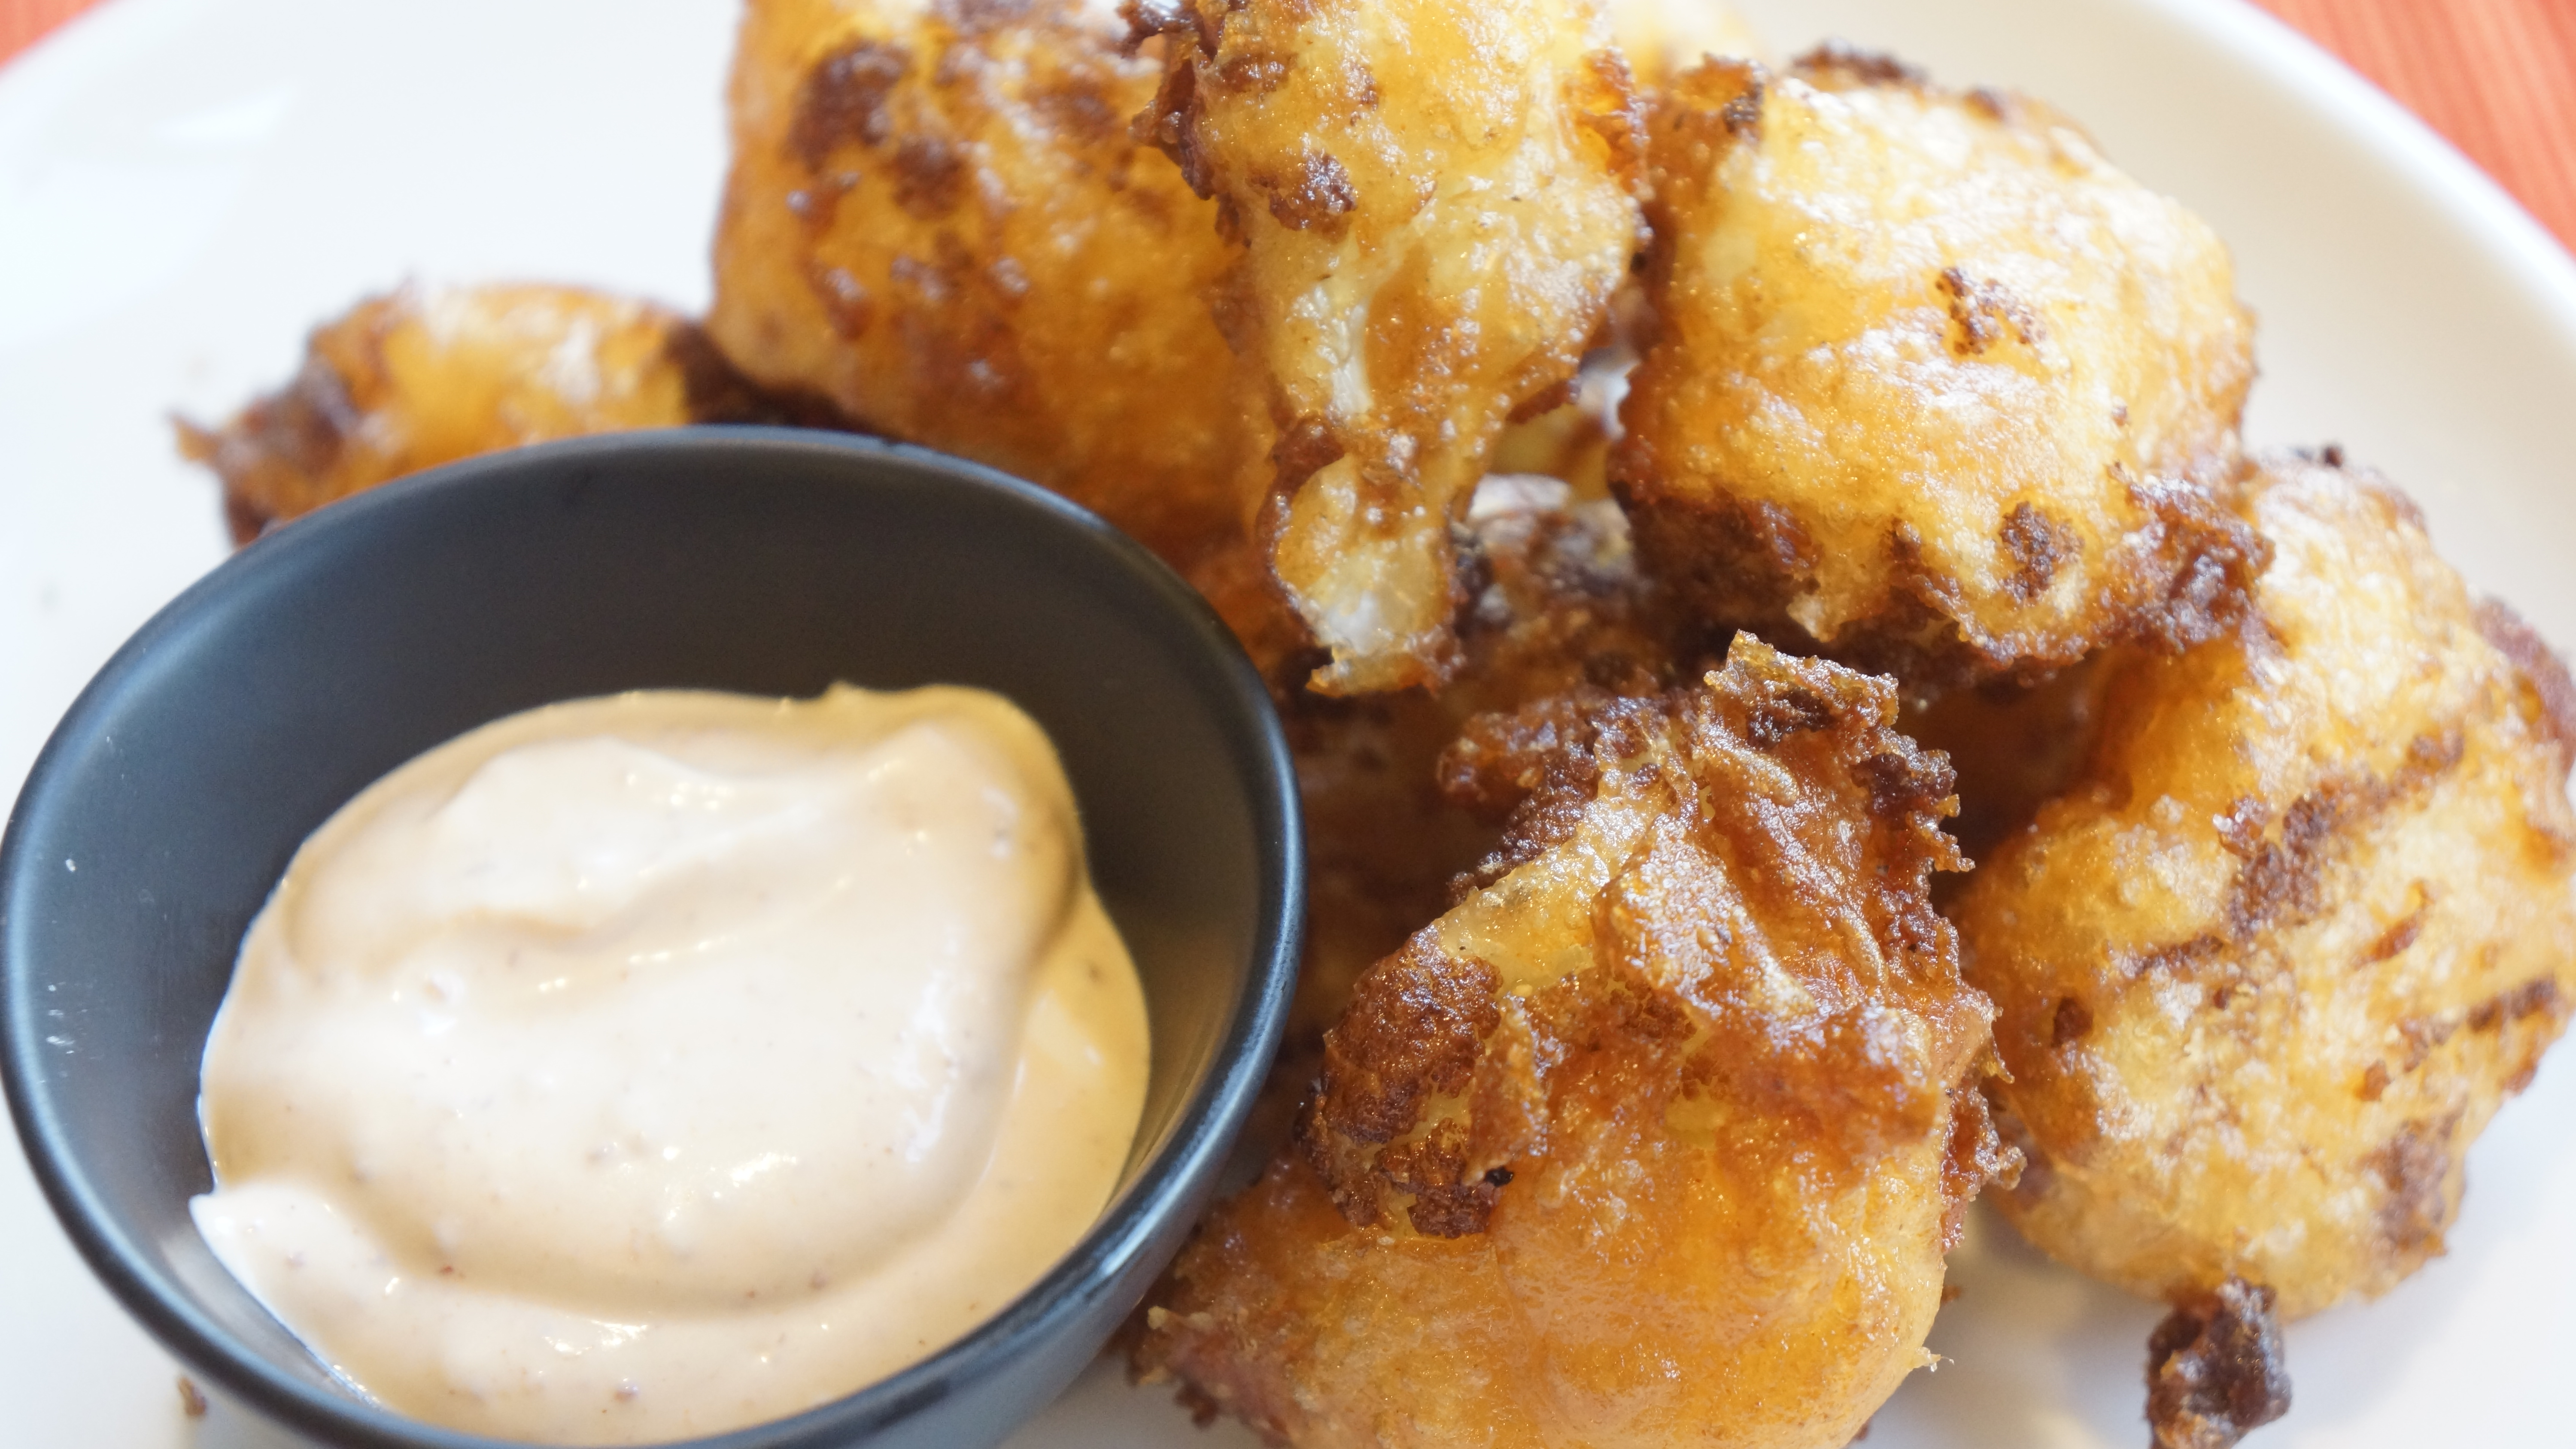 Cauliflower Tots with Harissa Dipping Sauce